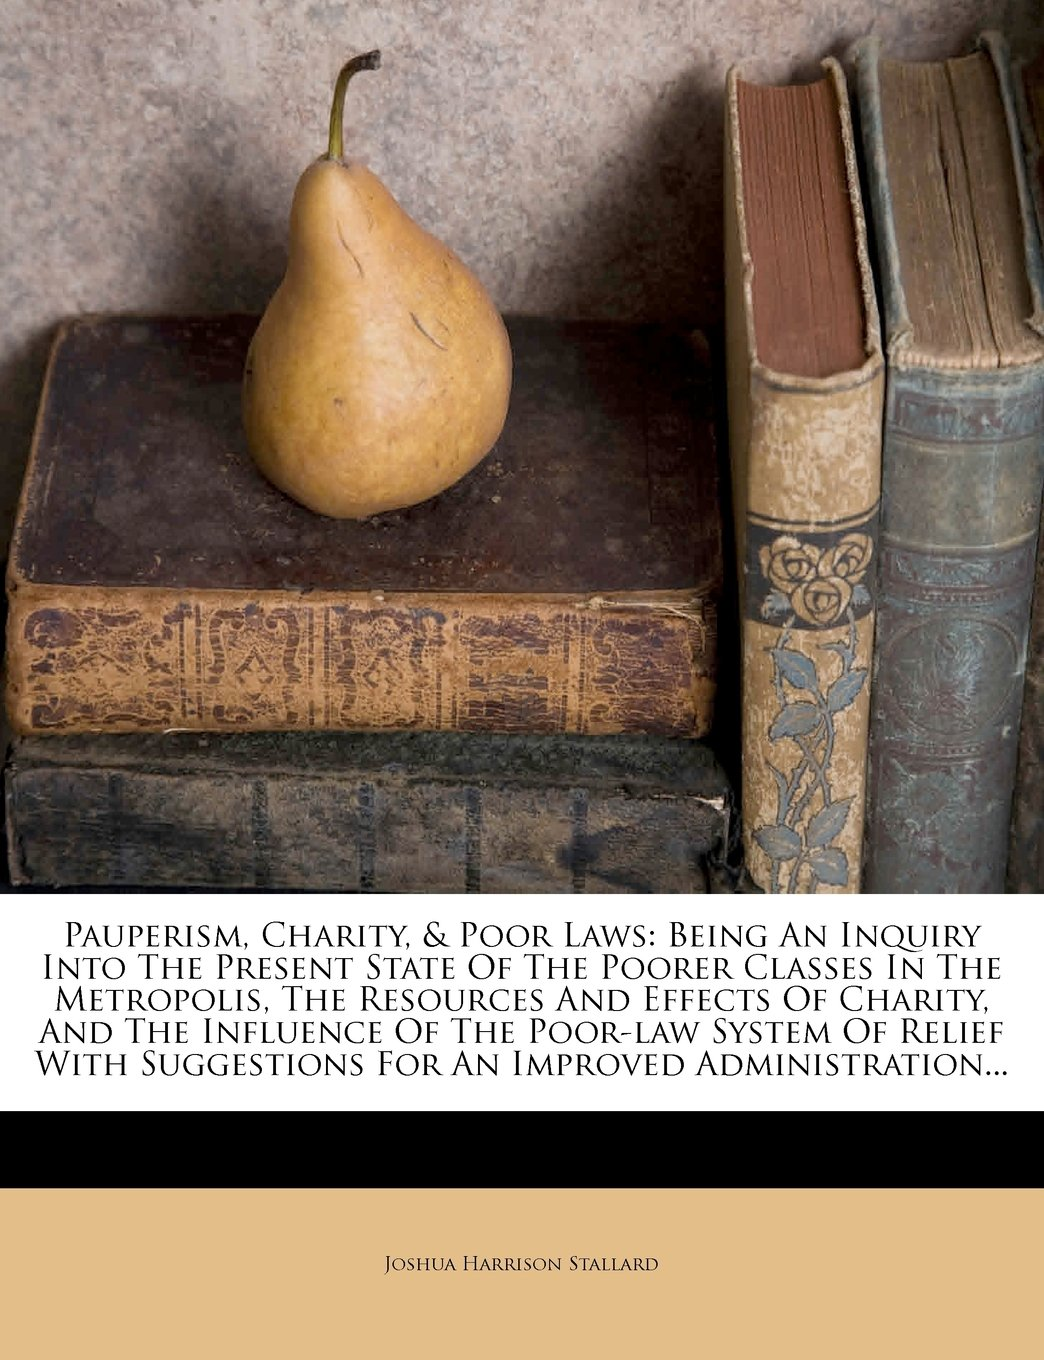 Pauperism, Charity, & Poor Laws: Being An Inquiry Into The Present State Of The Poorer Classes In The Metropolis, The Resources And Effects Of ... Suggestions For An Improved Administration... pdf